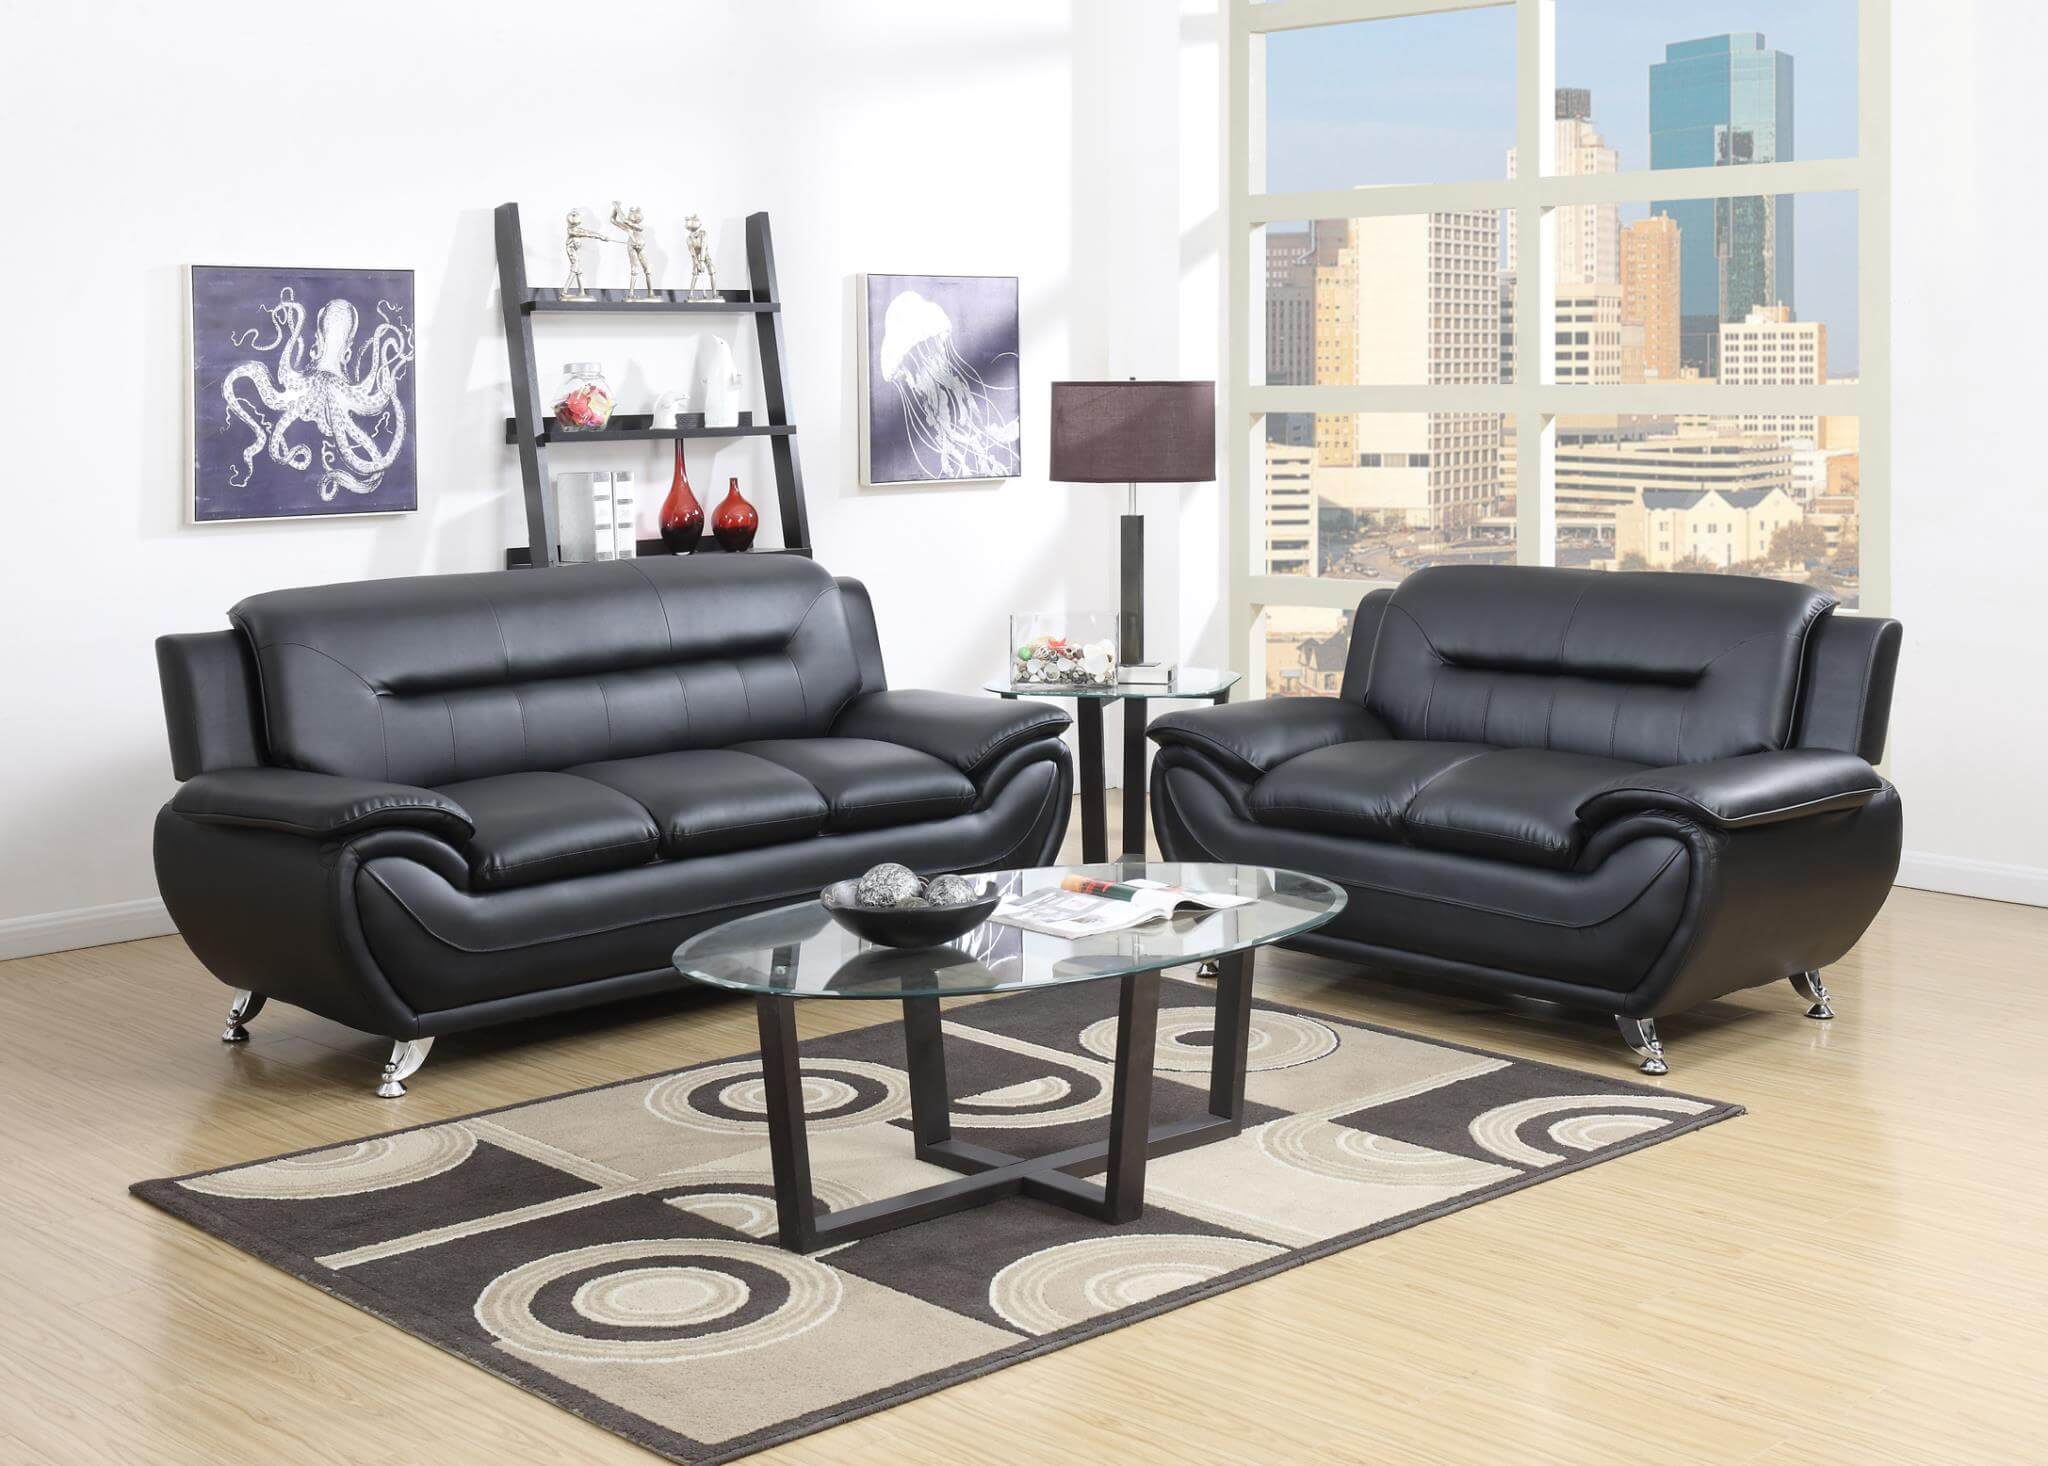 Black living room set leather living room sets